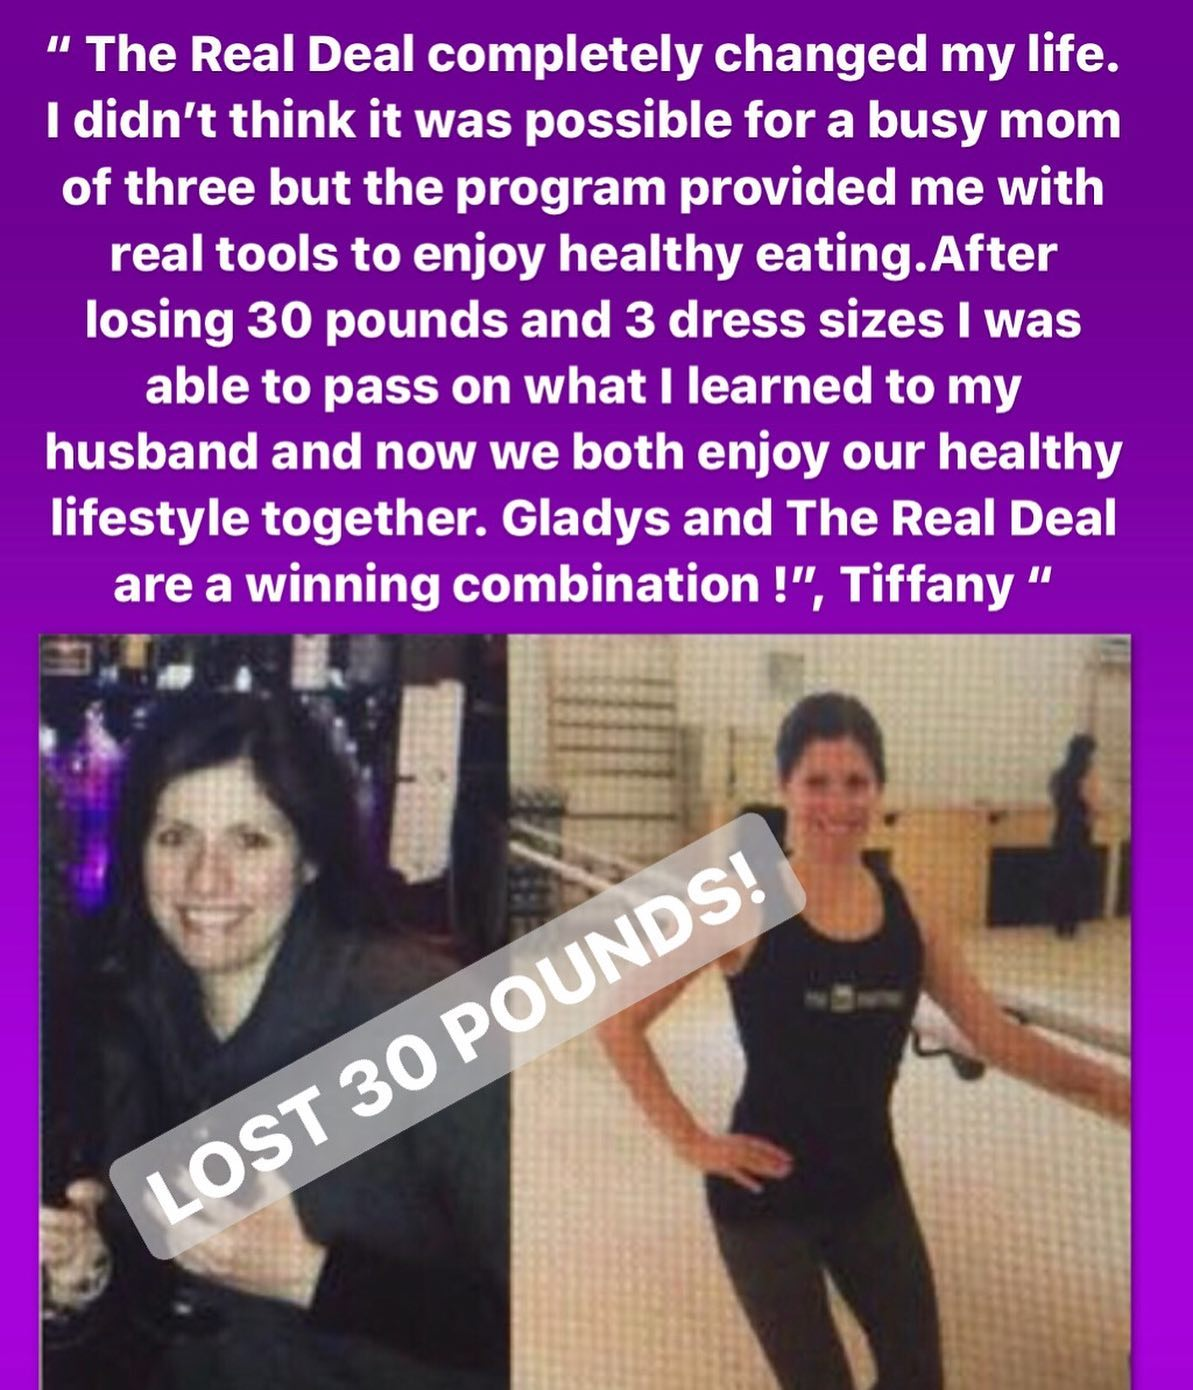 The Real Deal Online Weight Loss Program Results - Tiffany